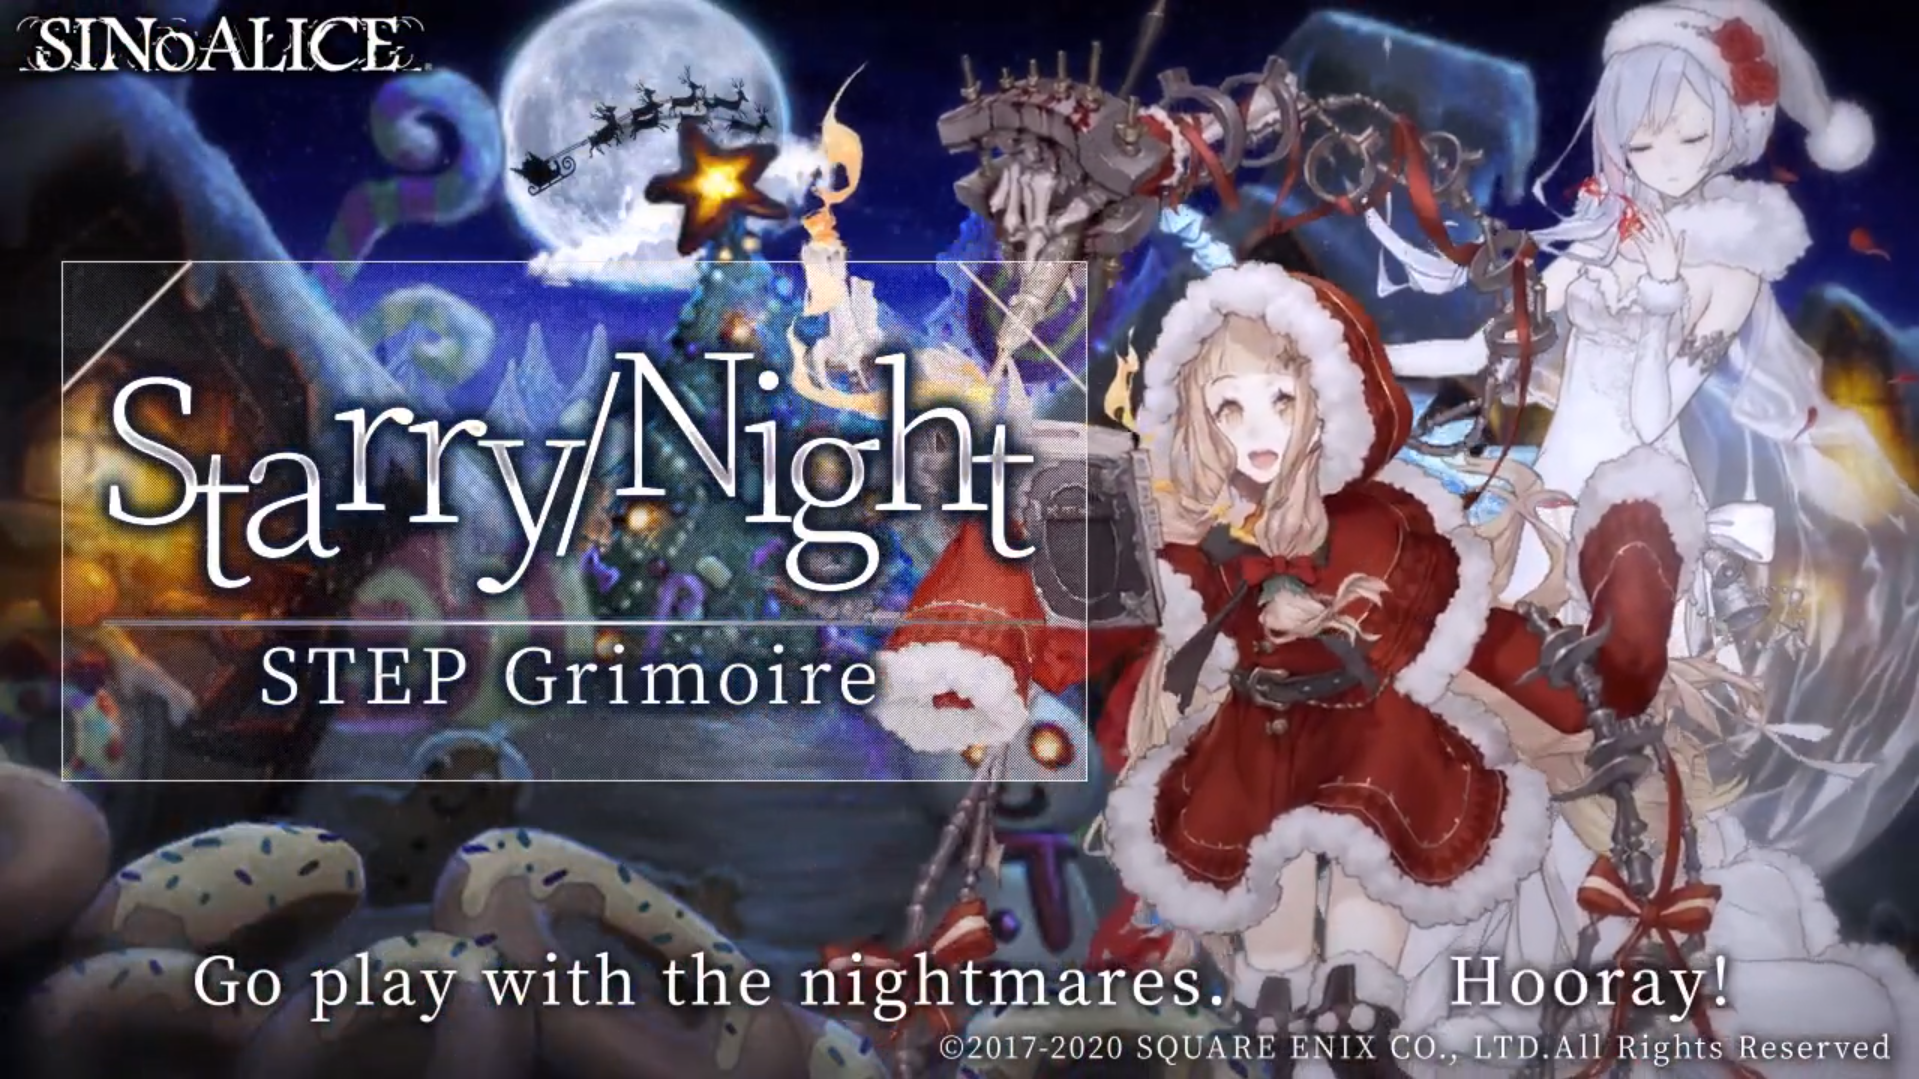 SINoALICE Plans To Release X-mas Feast Event Soon